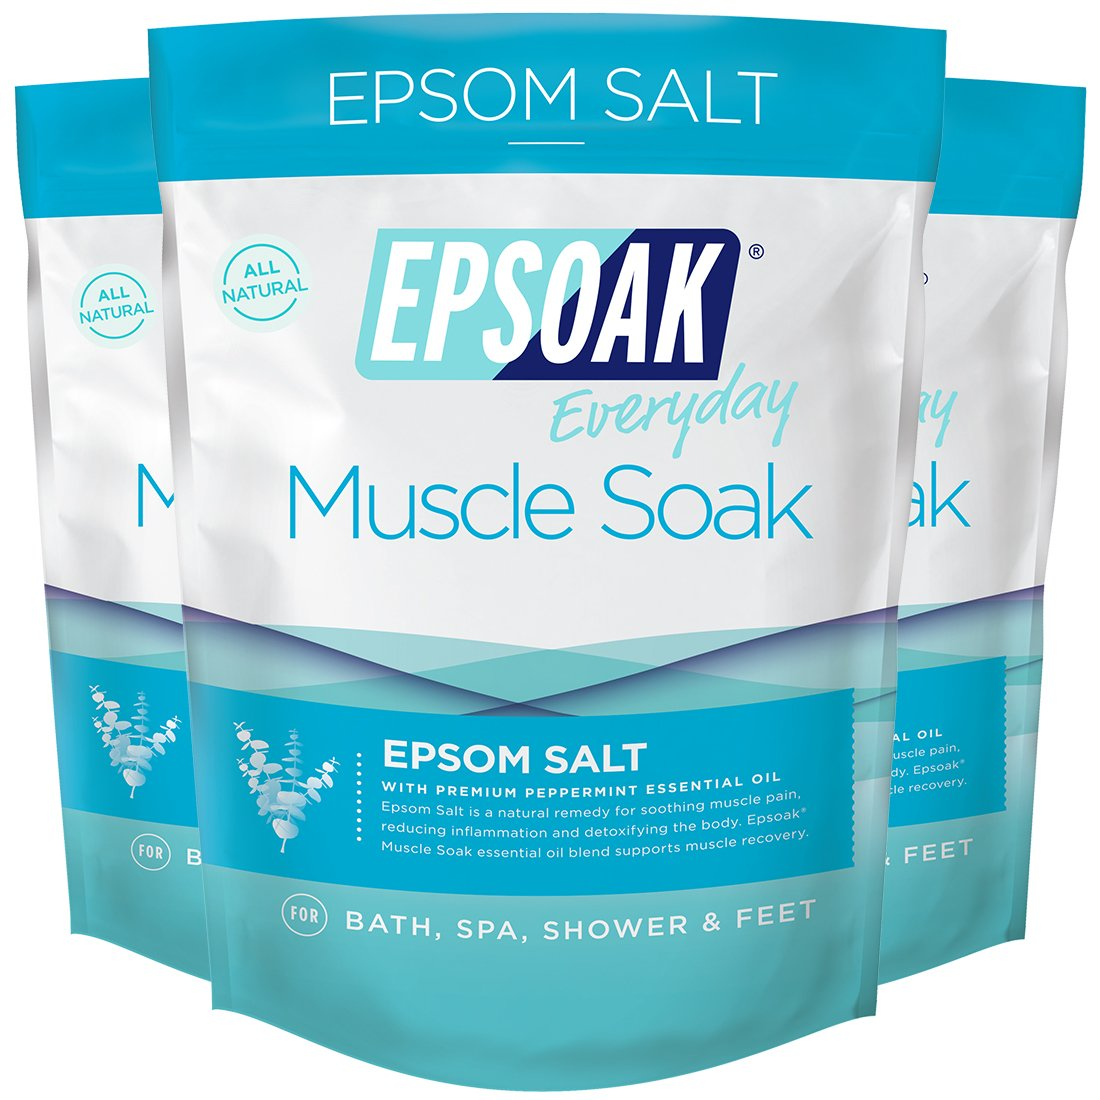 Epsoak Muscle Soak Formula 3 Pack - Relax & Soothe Body Aches & Pains with Essential Oil infused Epsom, Qty 3 x 2lbs bags NA